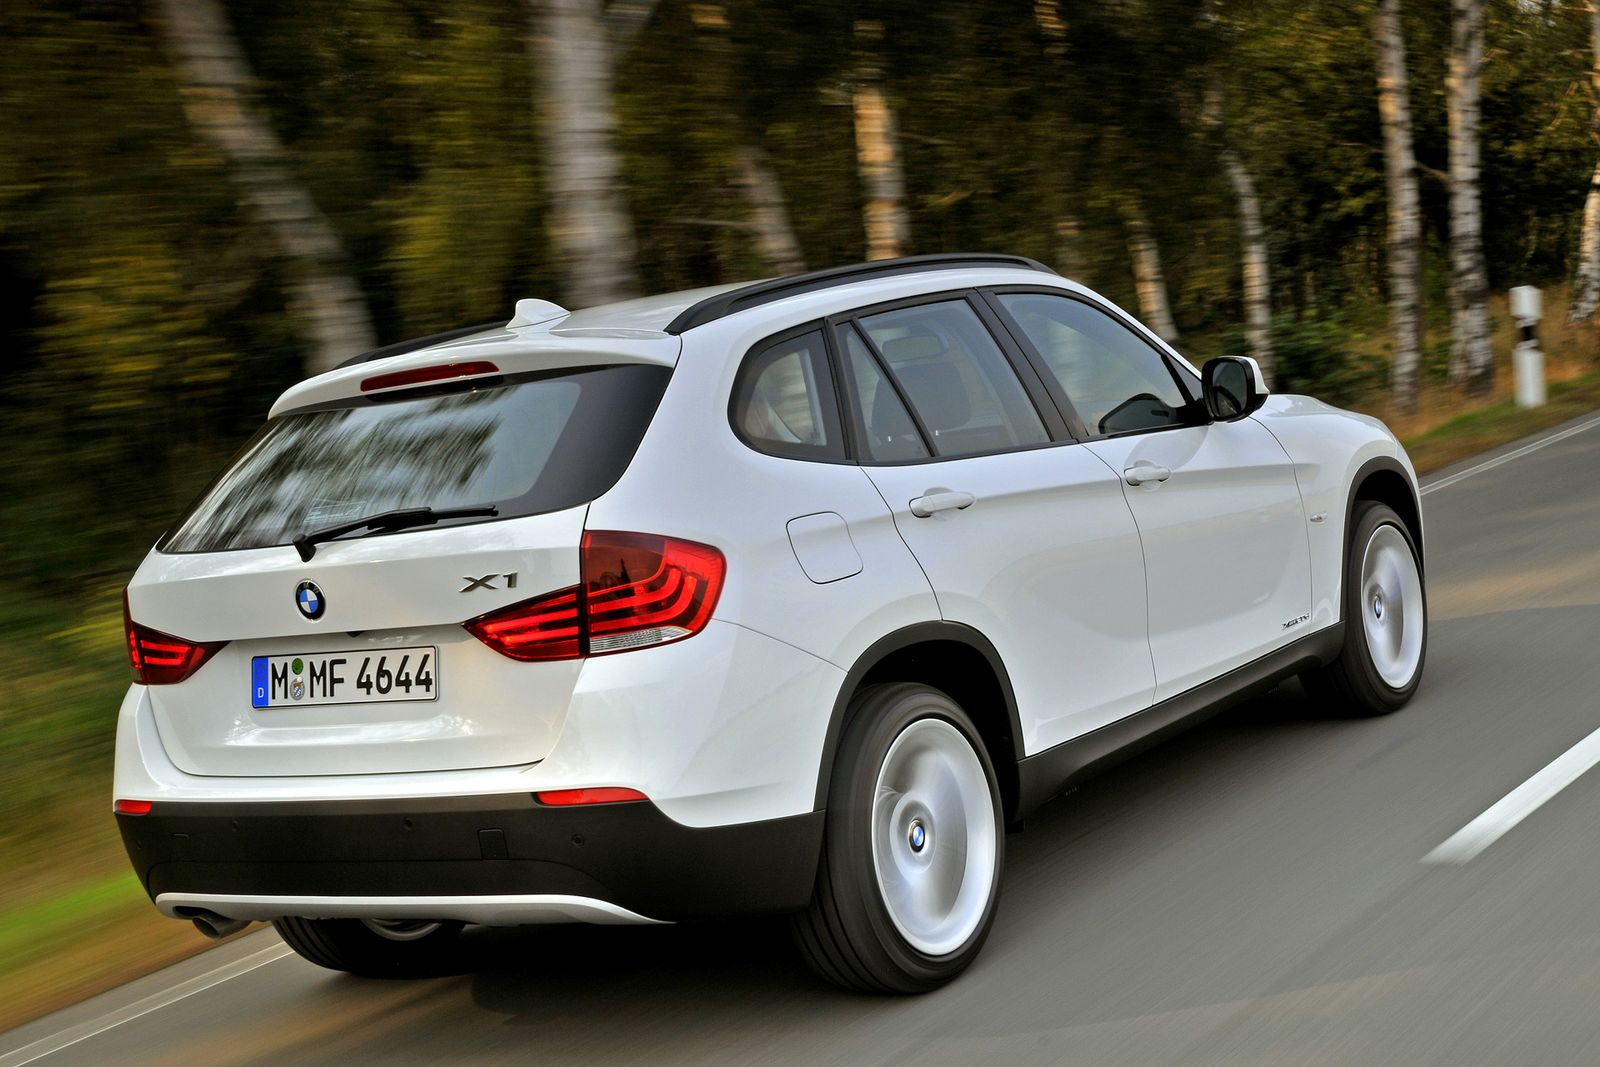 Bmw X1 Car Review Specification Images